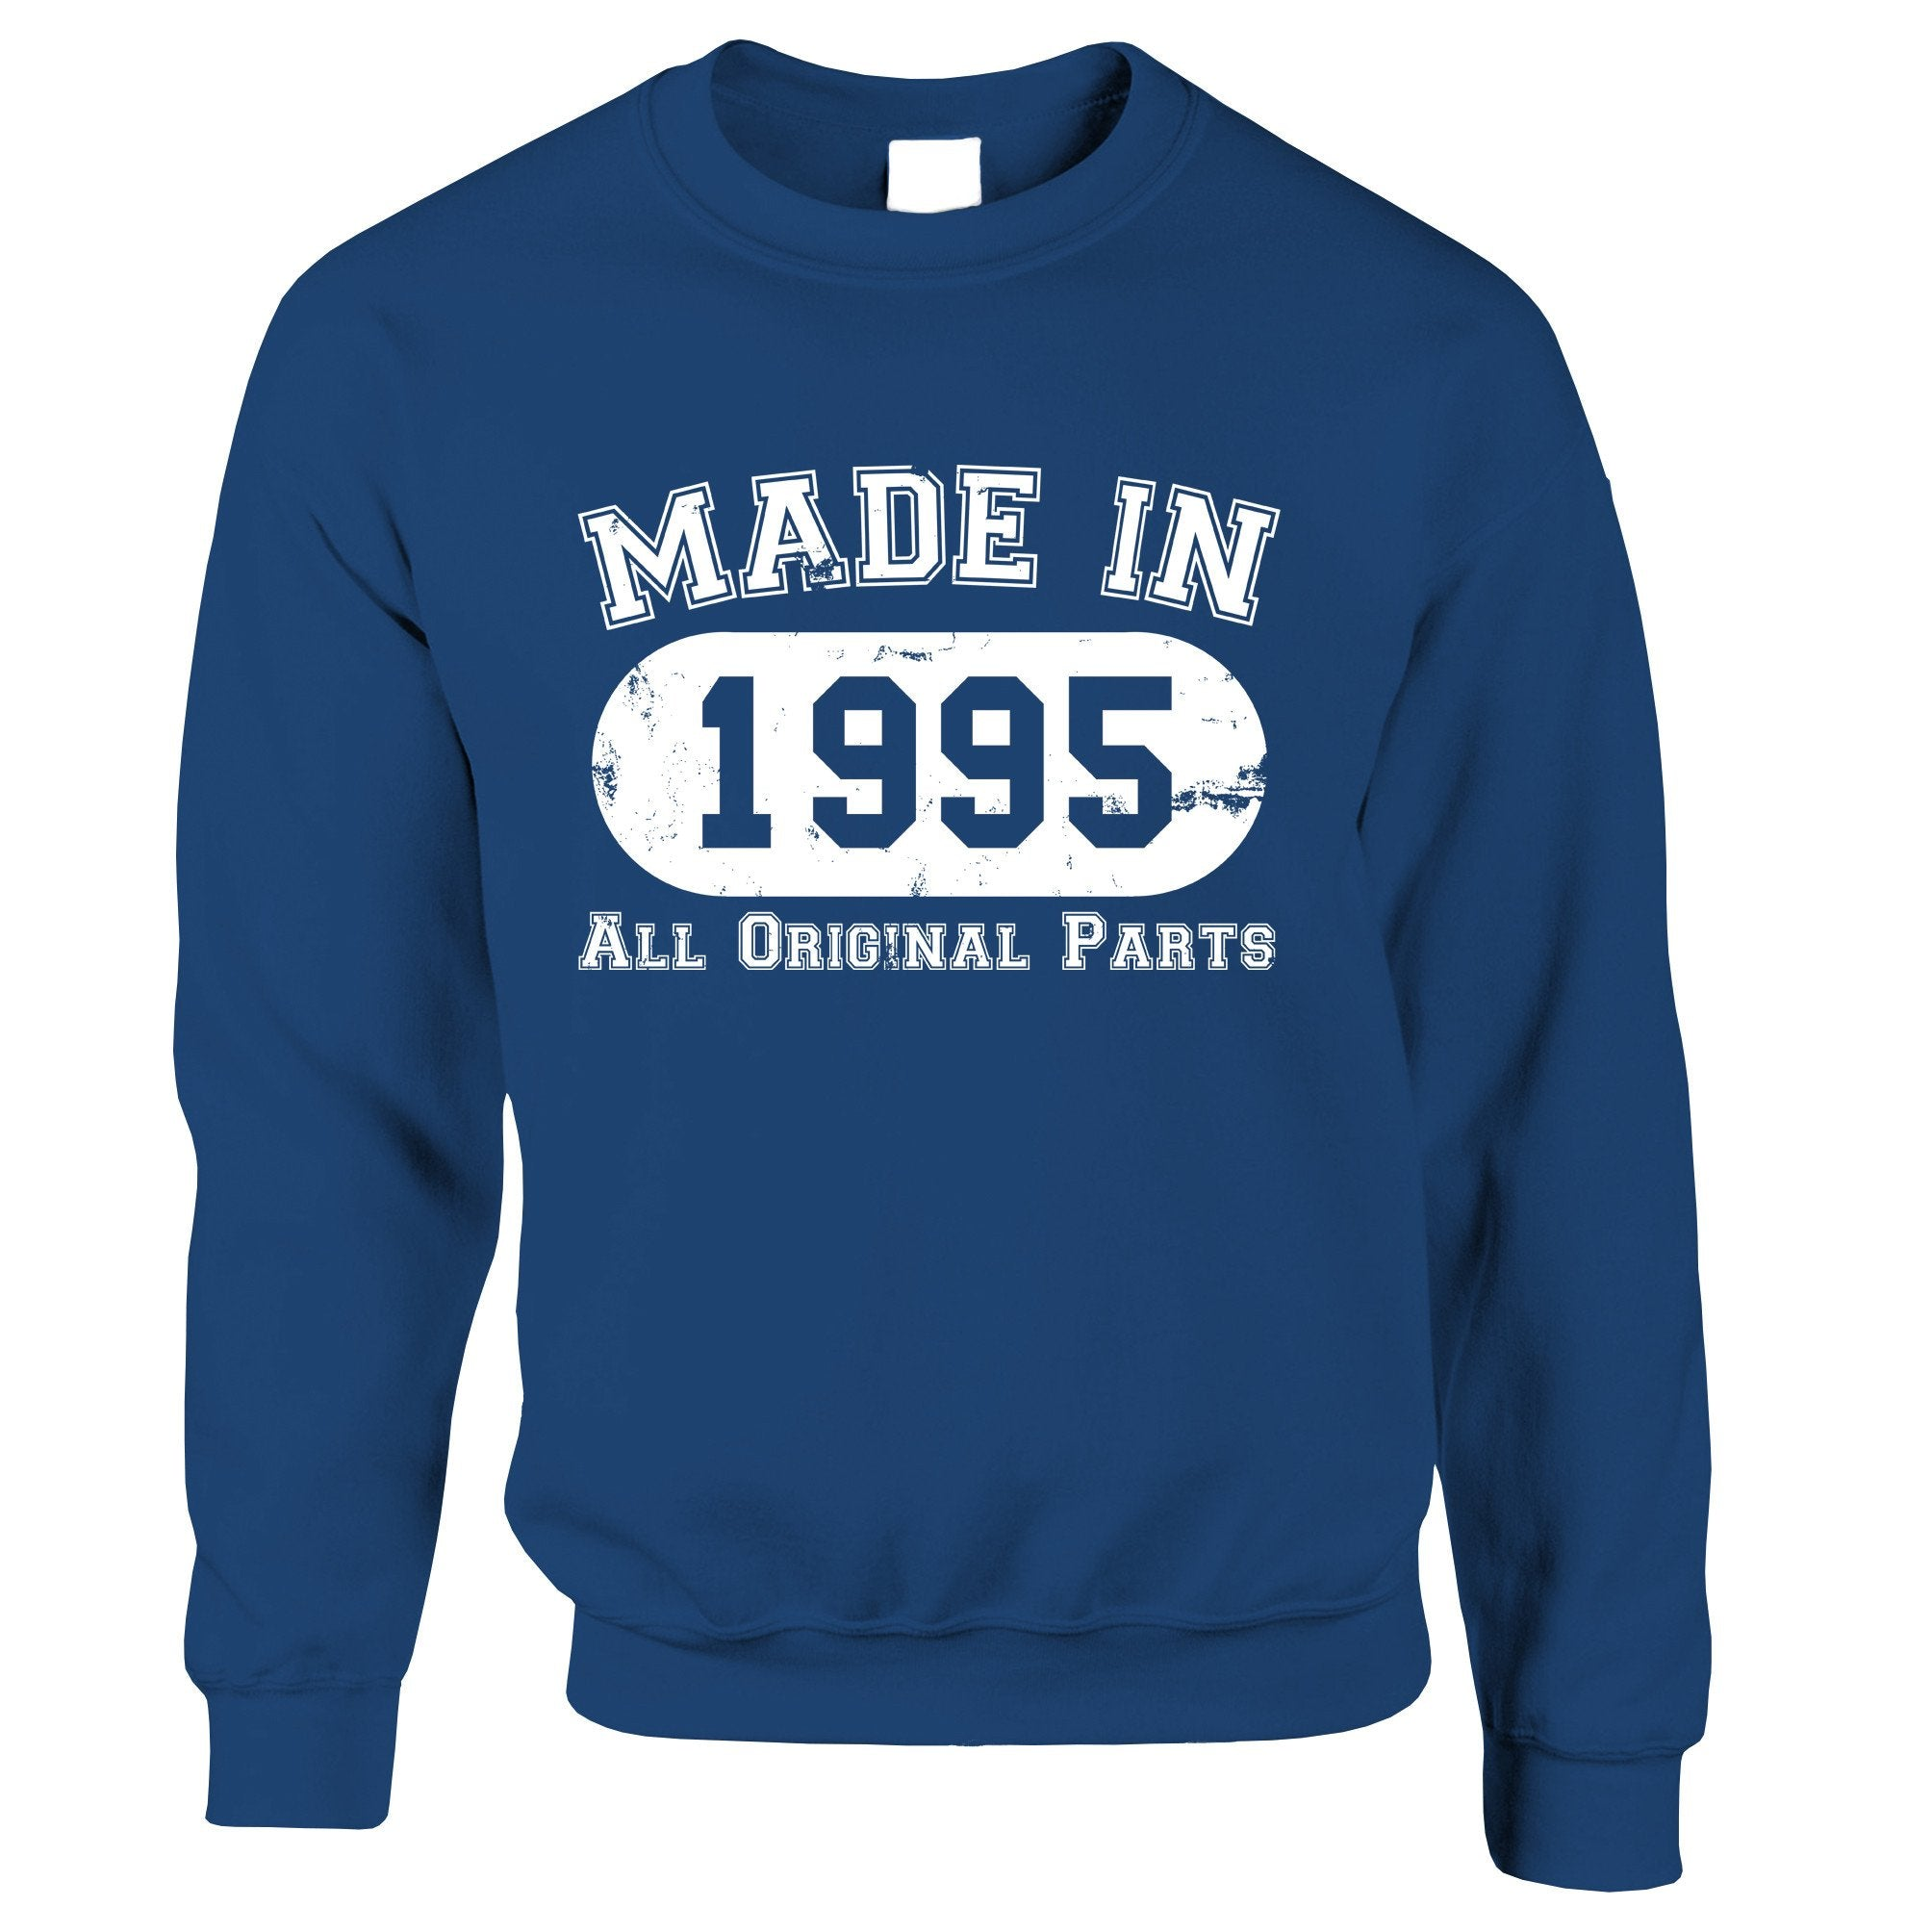 Made in 1995 All Original Parts Sweatshirt Jumper [Distressed]